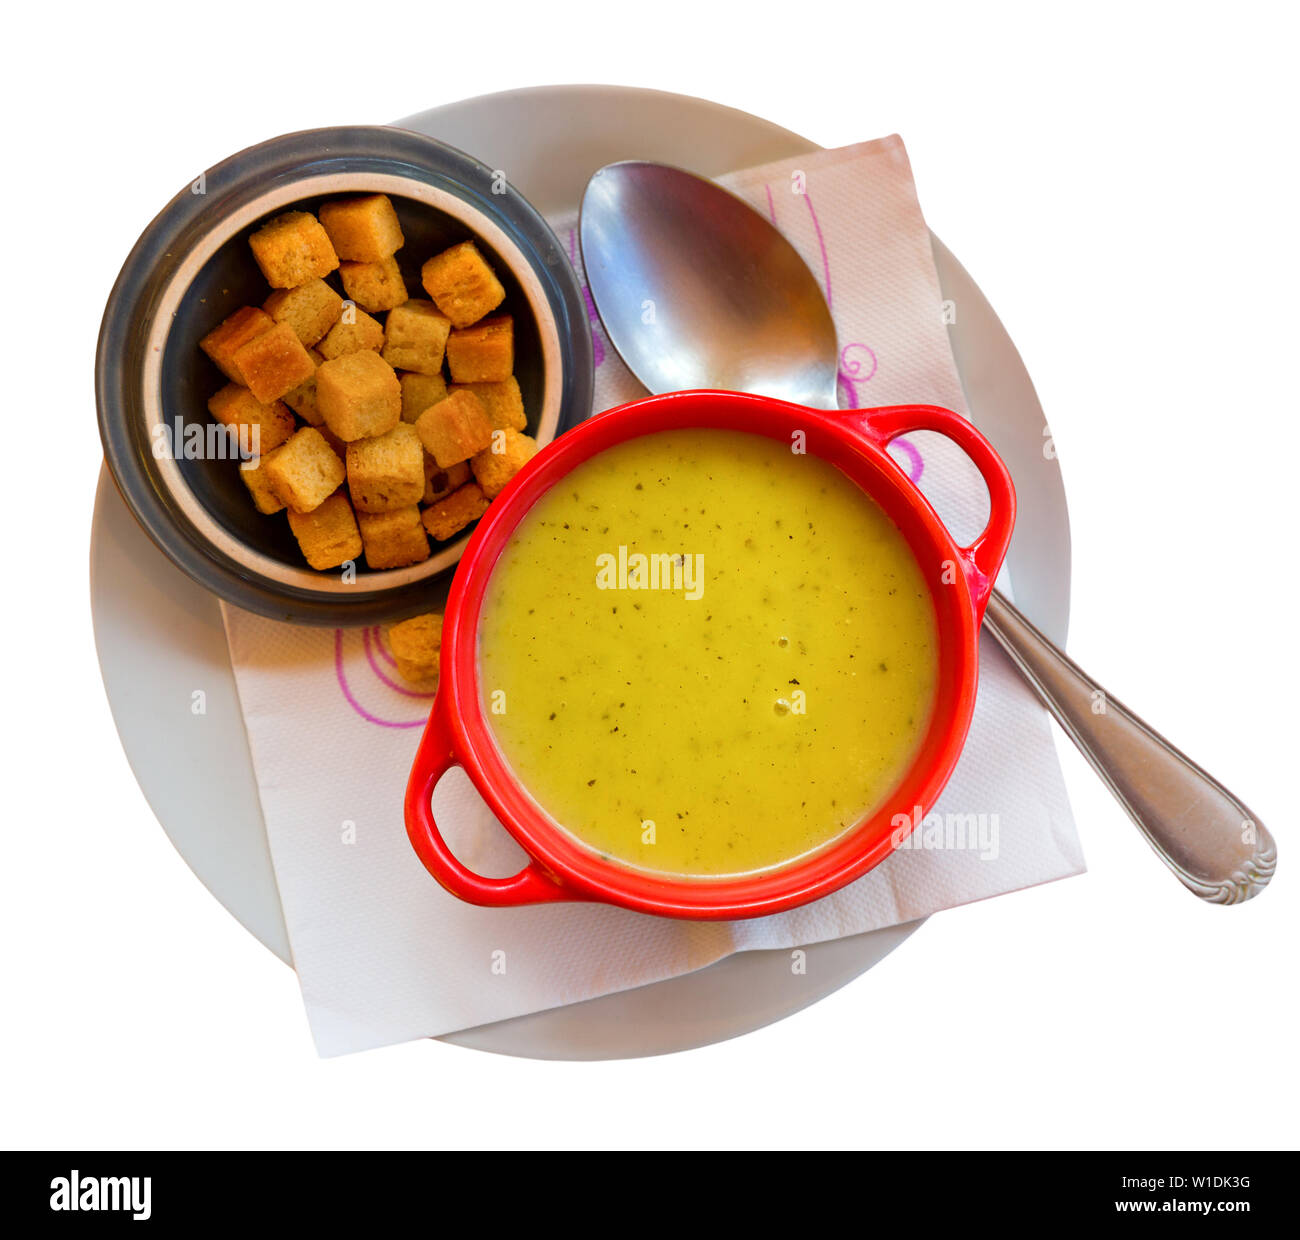 Cream soup of green vegetables garnished with croutons. Isolated over white background - Stock Image